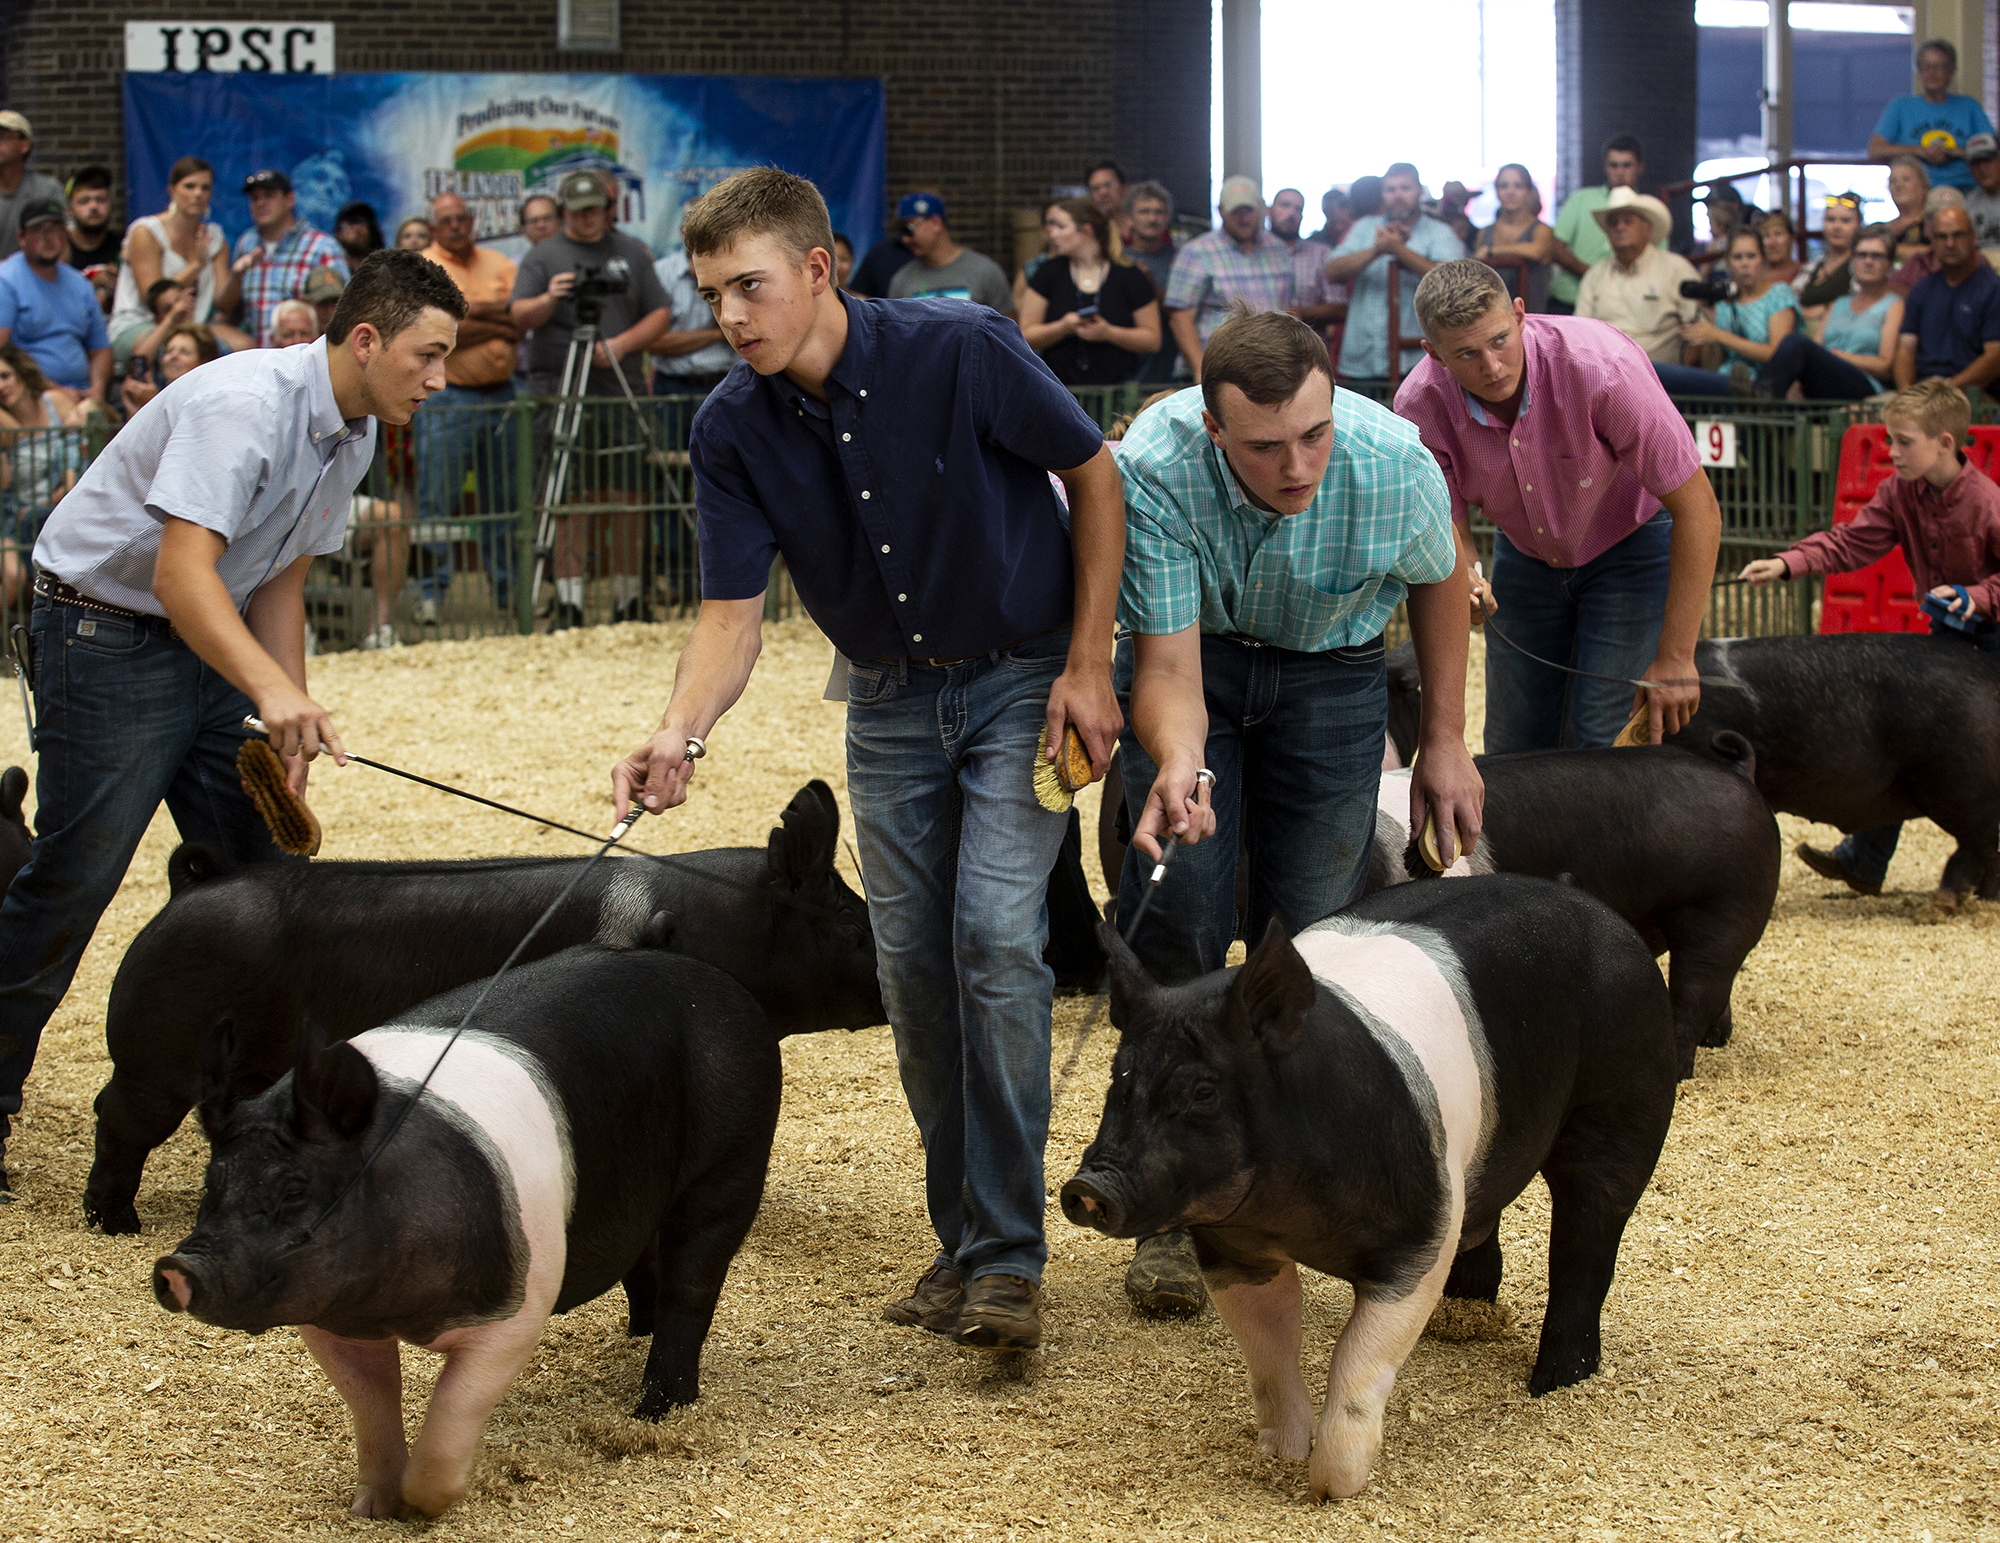 Hamphire barrows are shown in the best of breed championship class of the Land of Lincoln Junior Barrow Show at the Illinois State Fair Saturday, Aug. 11, 2018 on the fairgrounds in Springfield, Ill. [Rich Saal/The State Journal-Register]